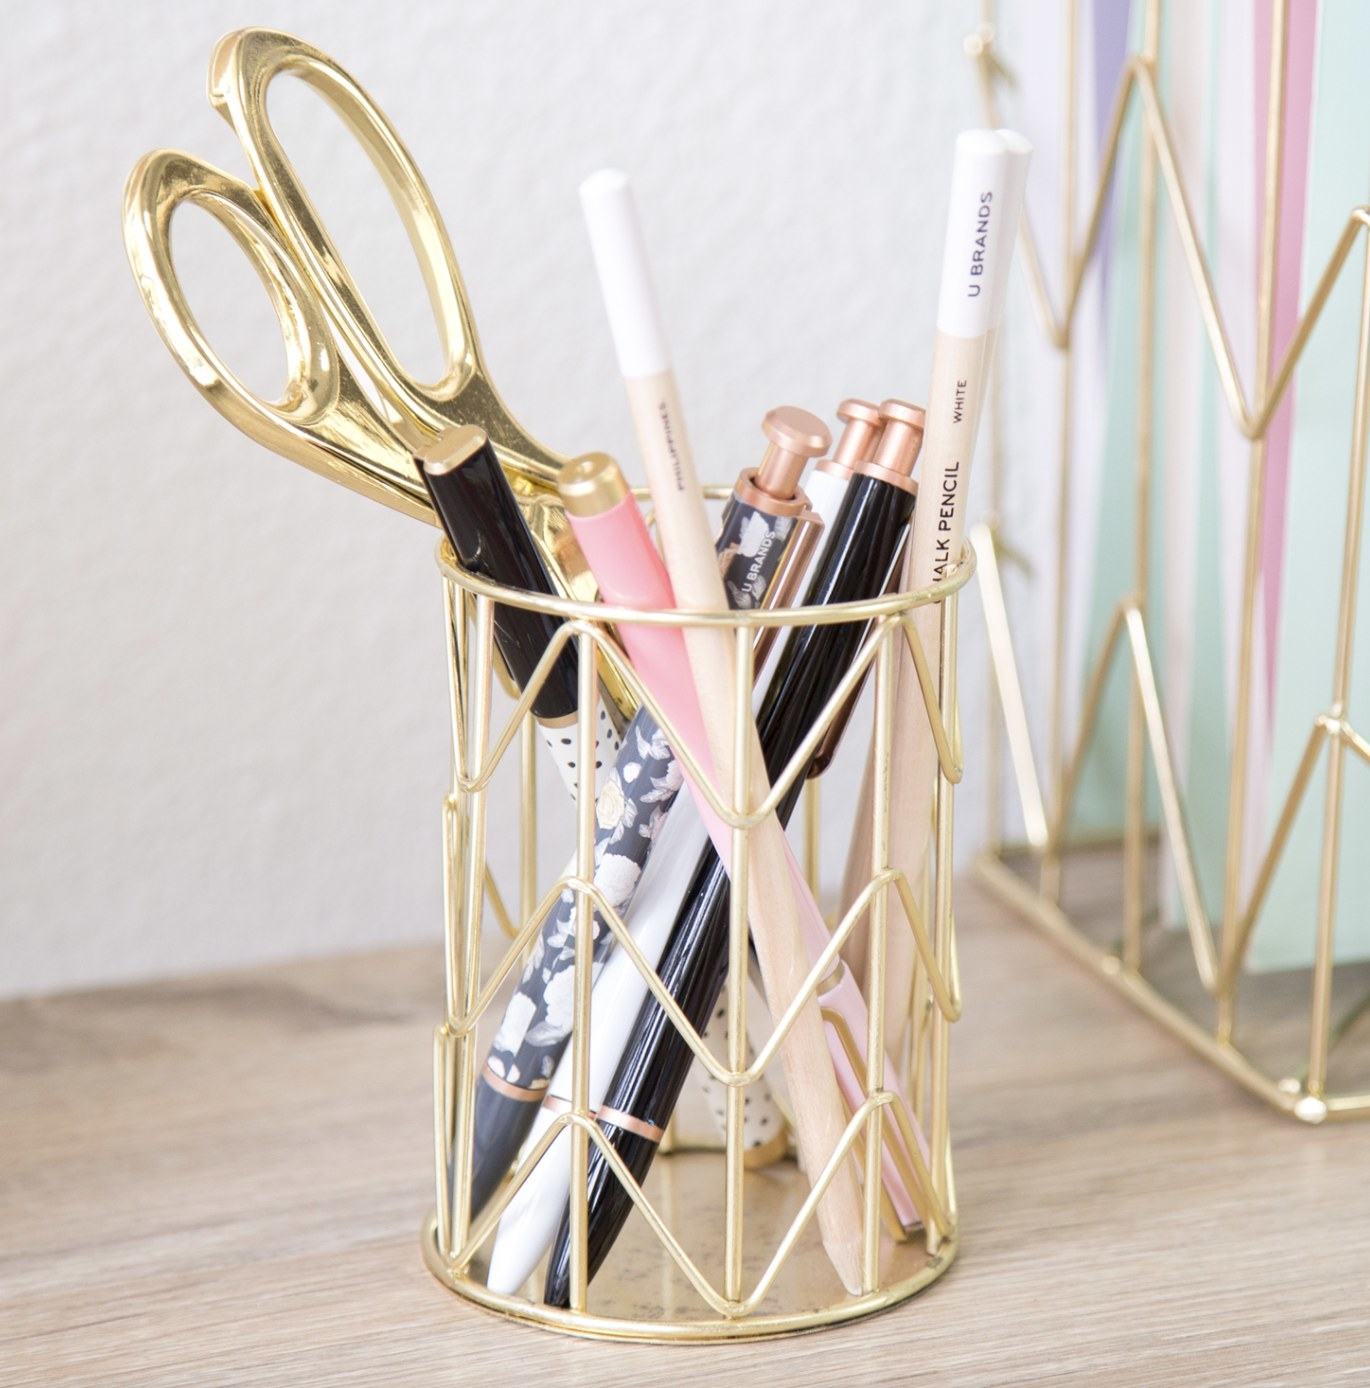 pencil holder with pens, pencils, and scissors inside of it